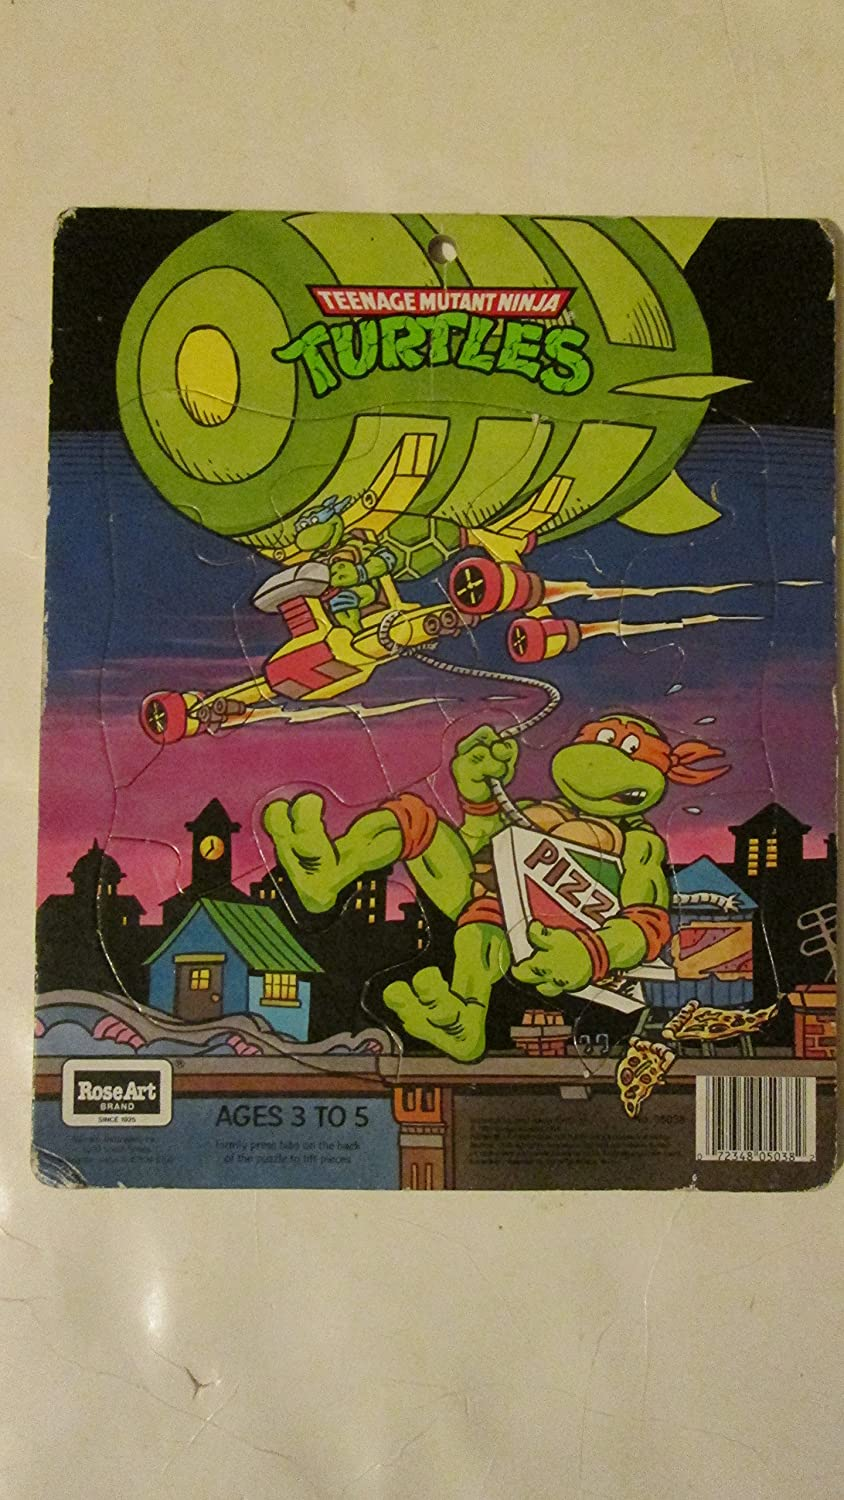 Teenage Mutant Ninja Turtles - Leonardo & Michelangelo with the Turtle Blimp - 12 Piece Frame Tray Puzzle (1990)